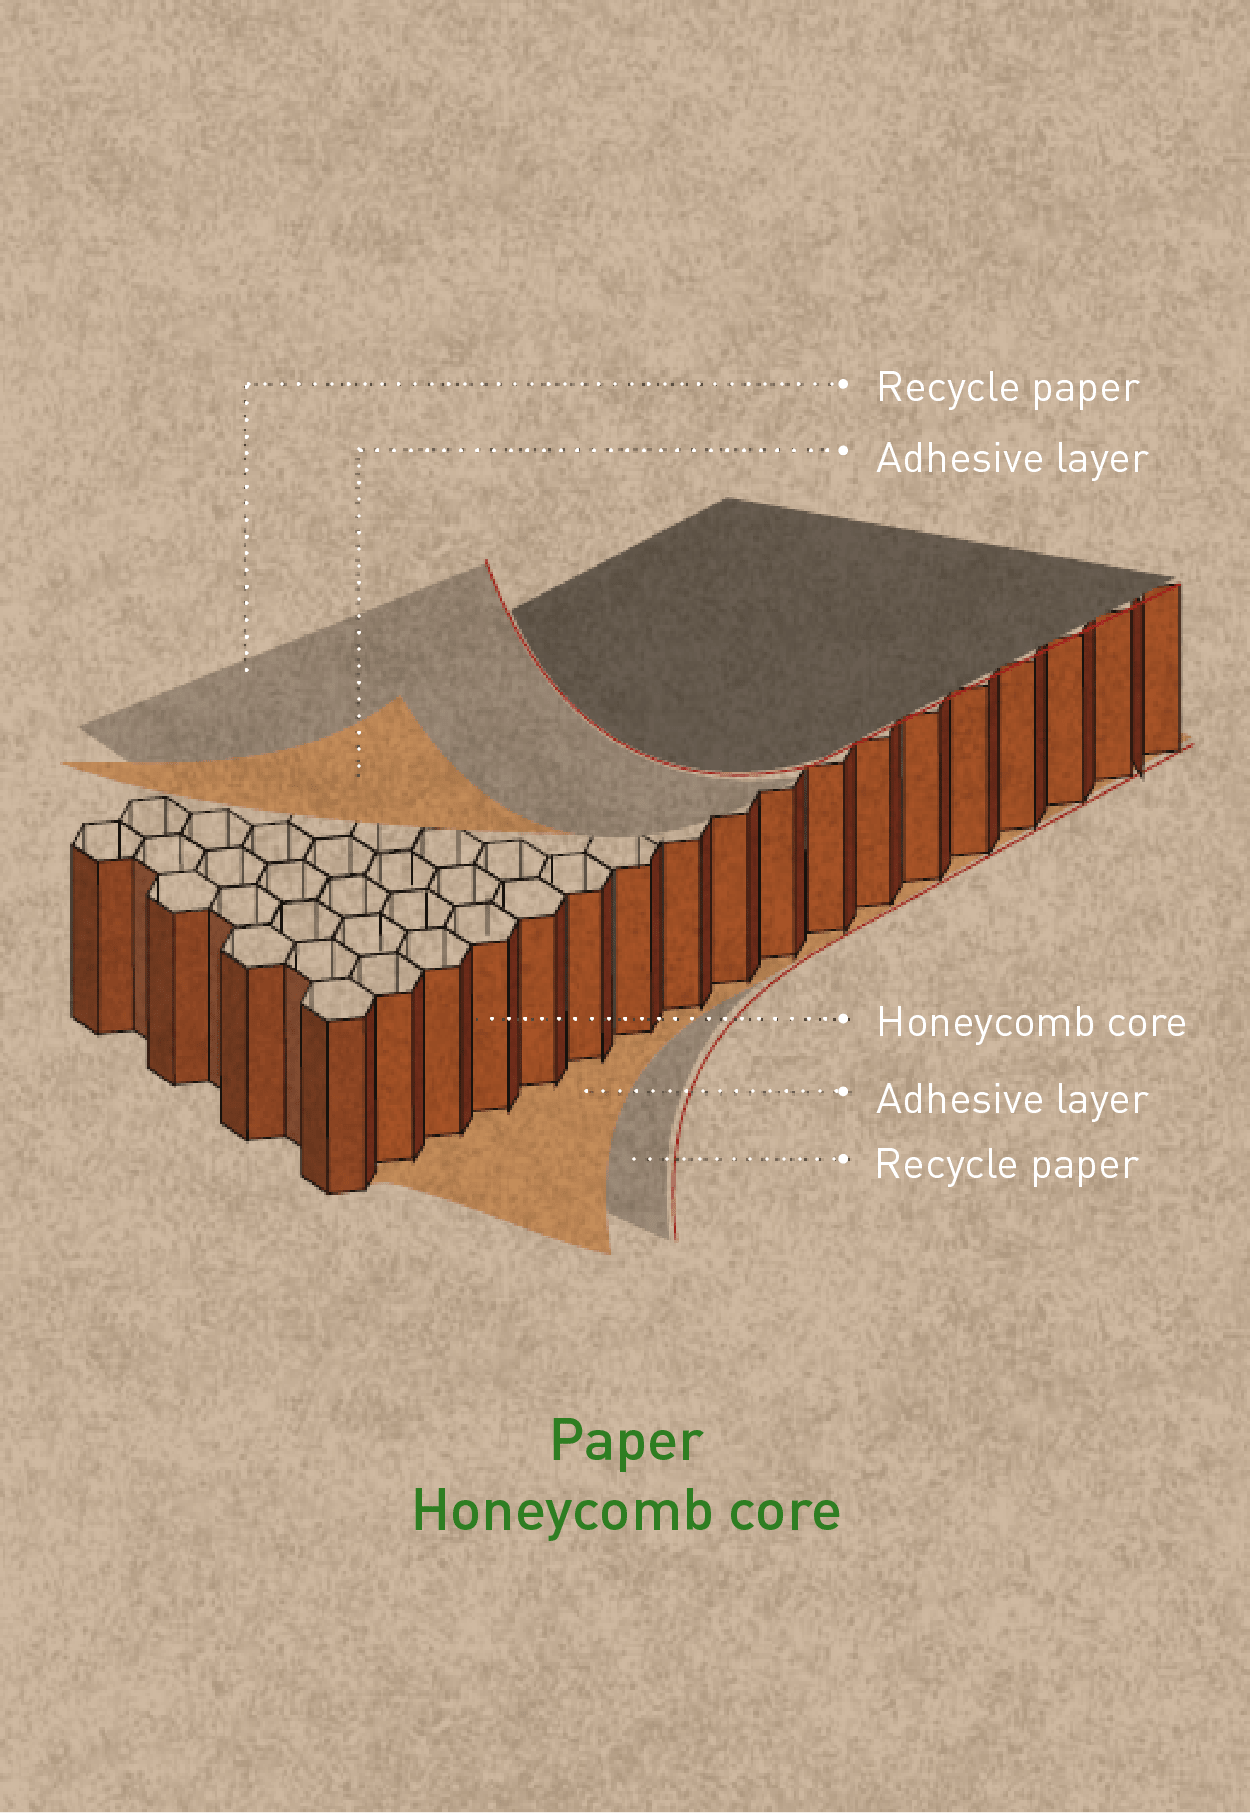 Building Affordable Homes with 100% Ecofriendly Materials - Paper!!